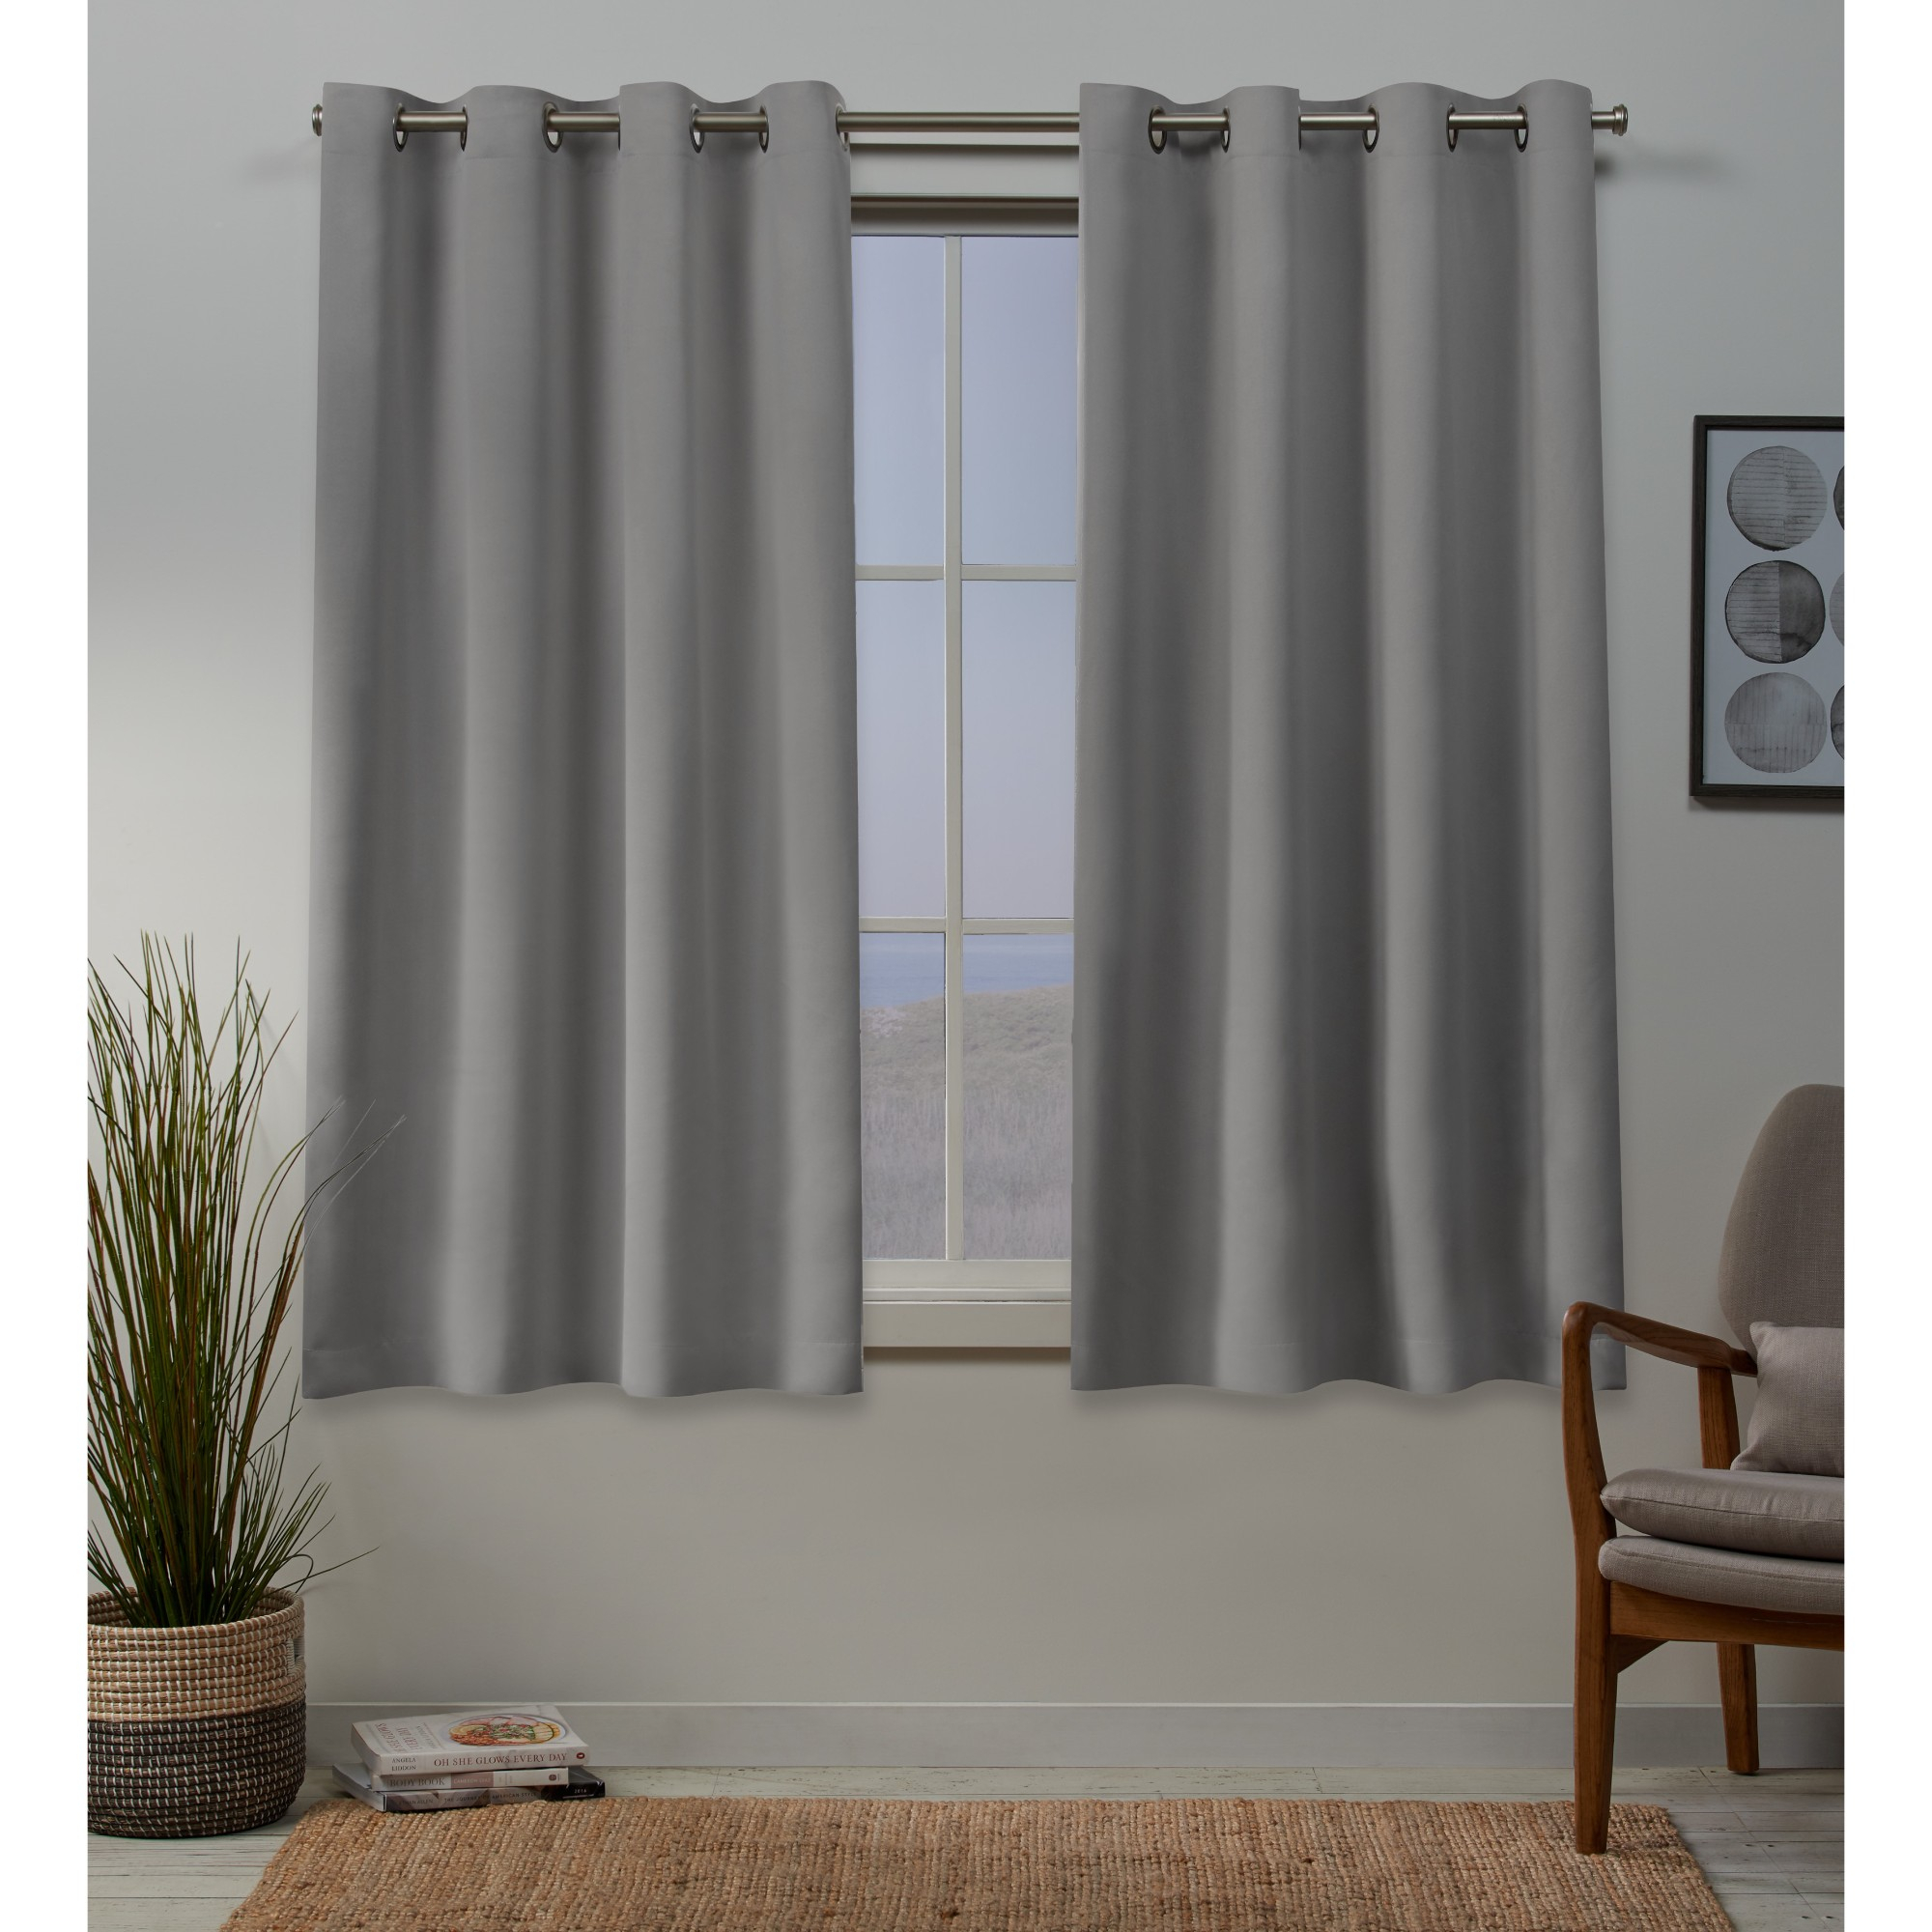 Sateen Woven Blackout Grommet Top Window Curtain Panel Pair Intended For Woven Blackout Curtain Panel Pairs With Grommet Top (View 21 of 30)